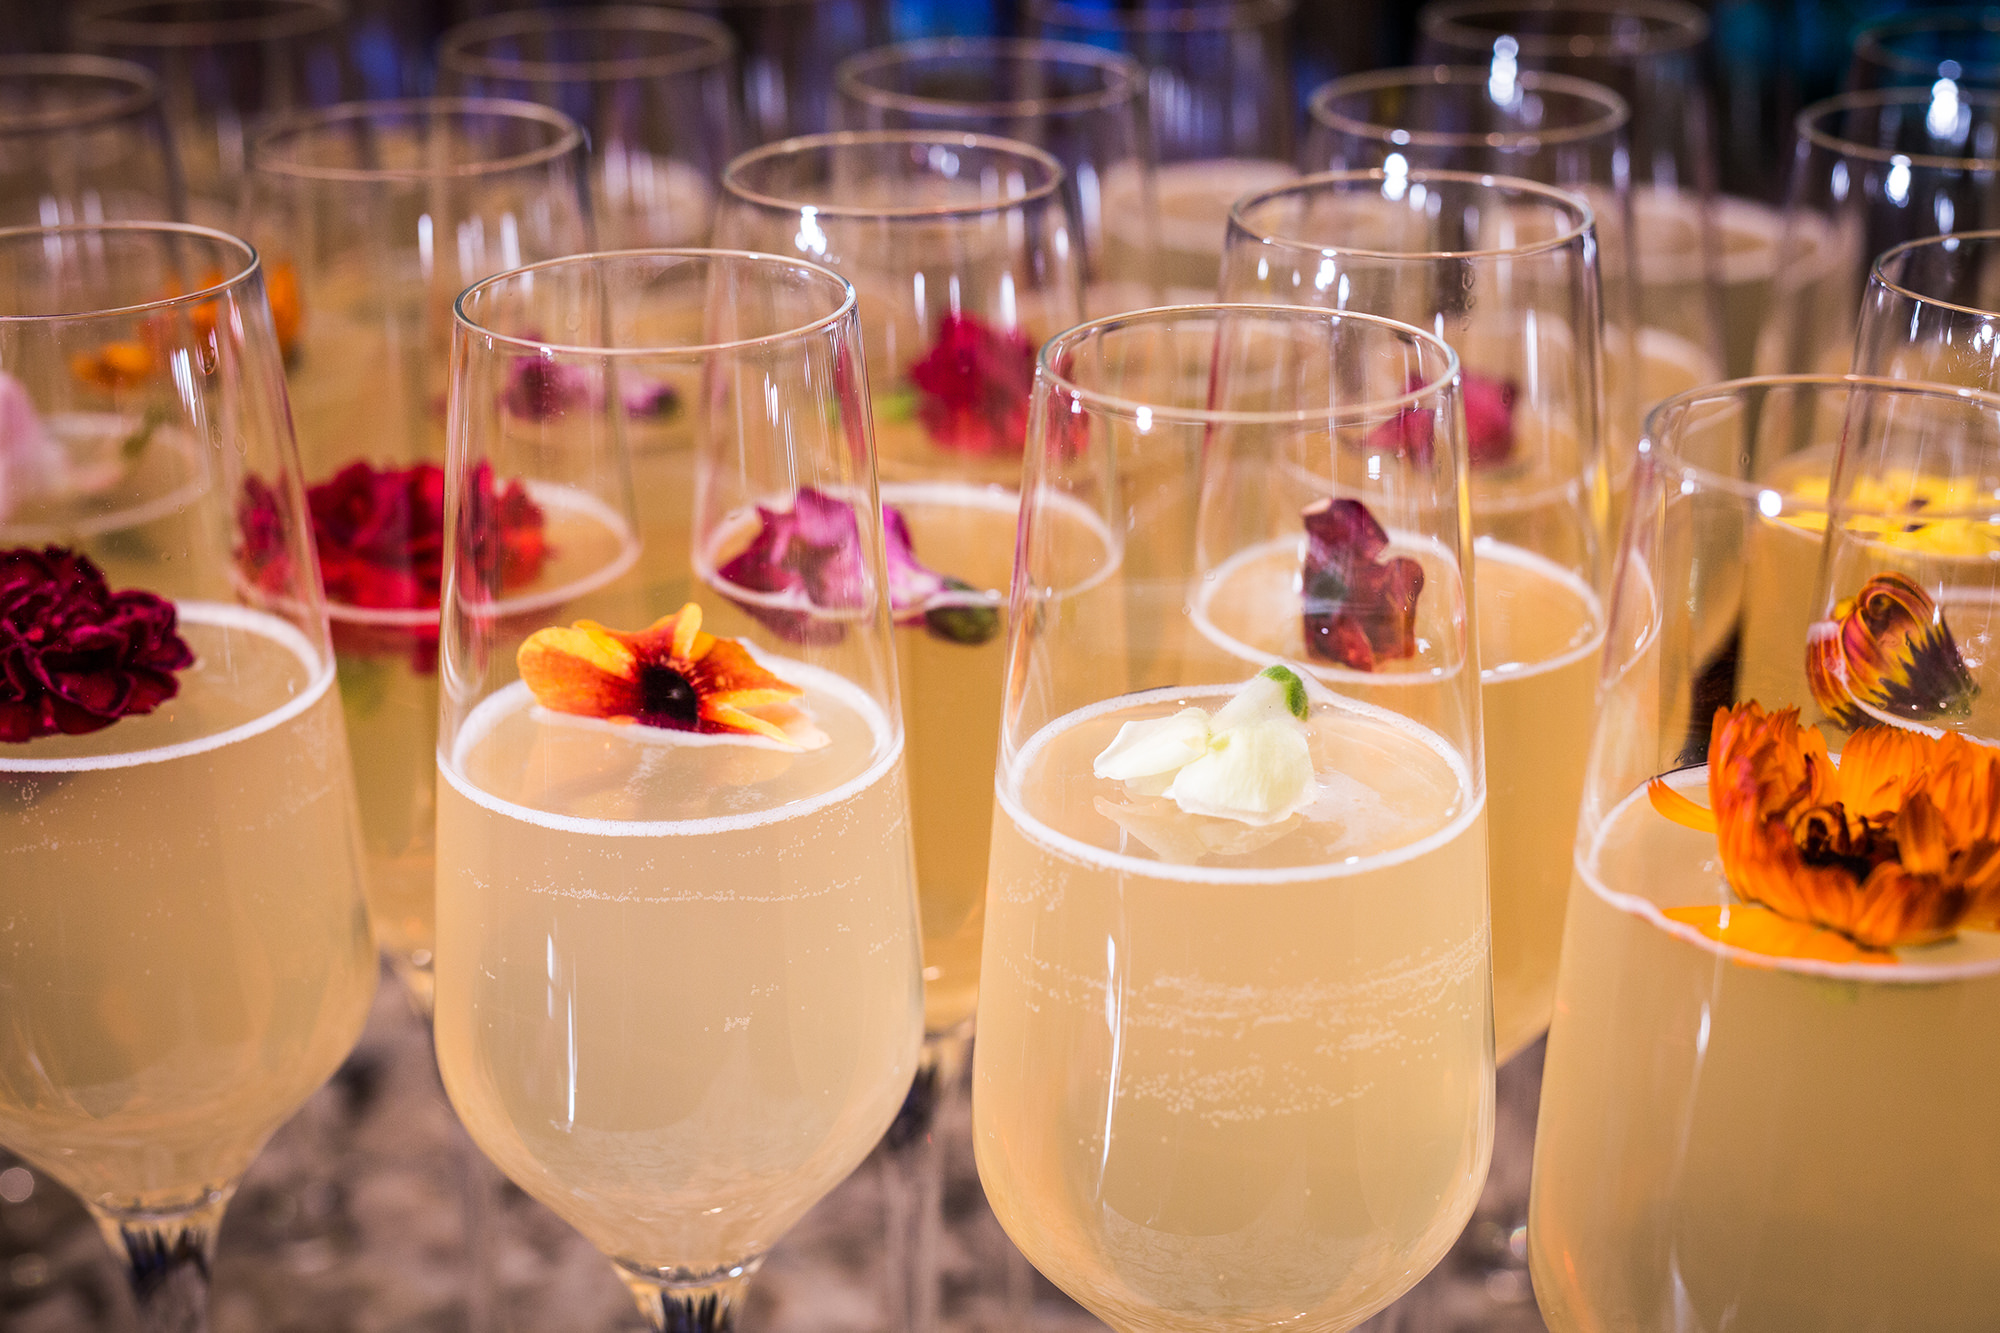 Specialty Cocktails In Champagne Glasses